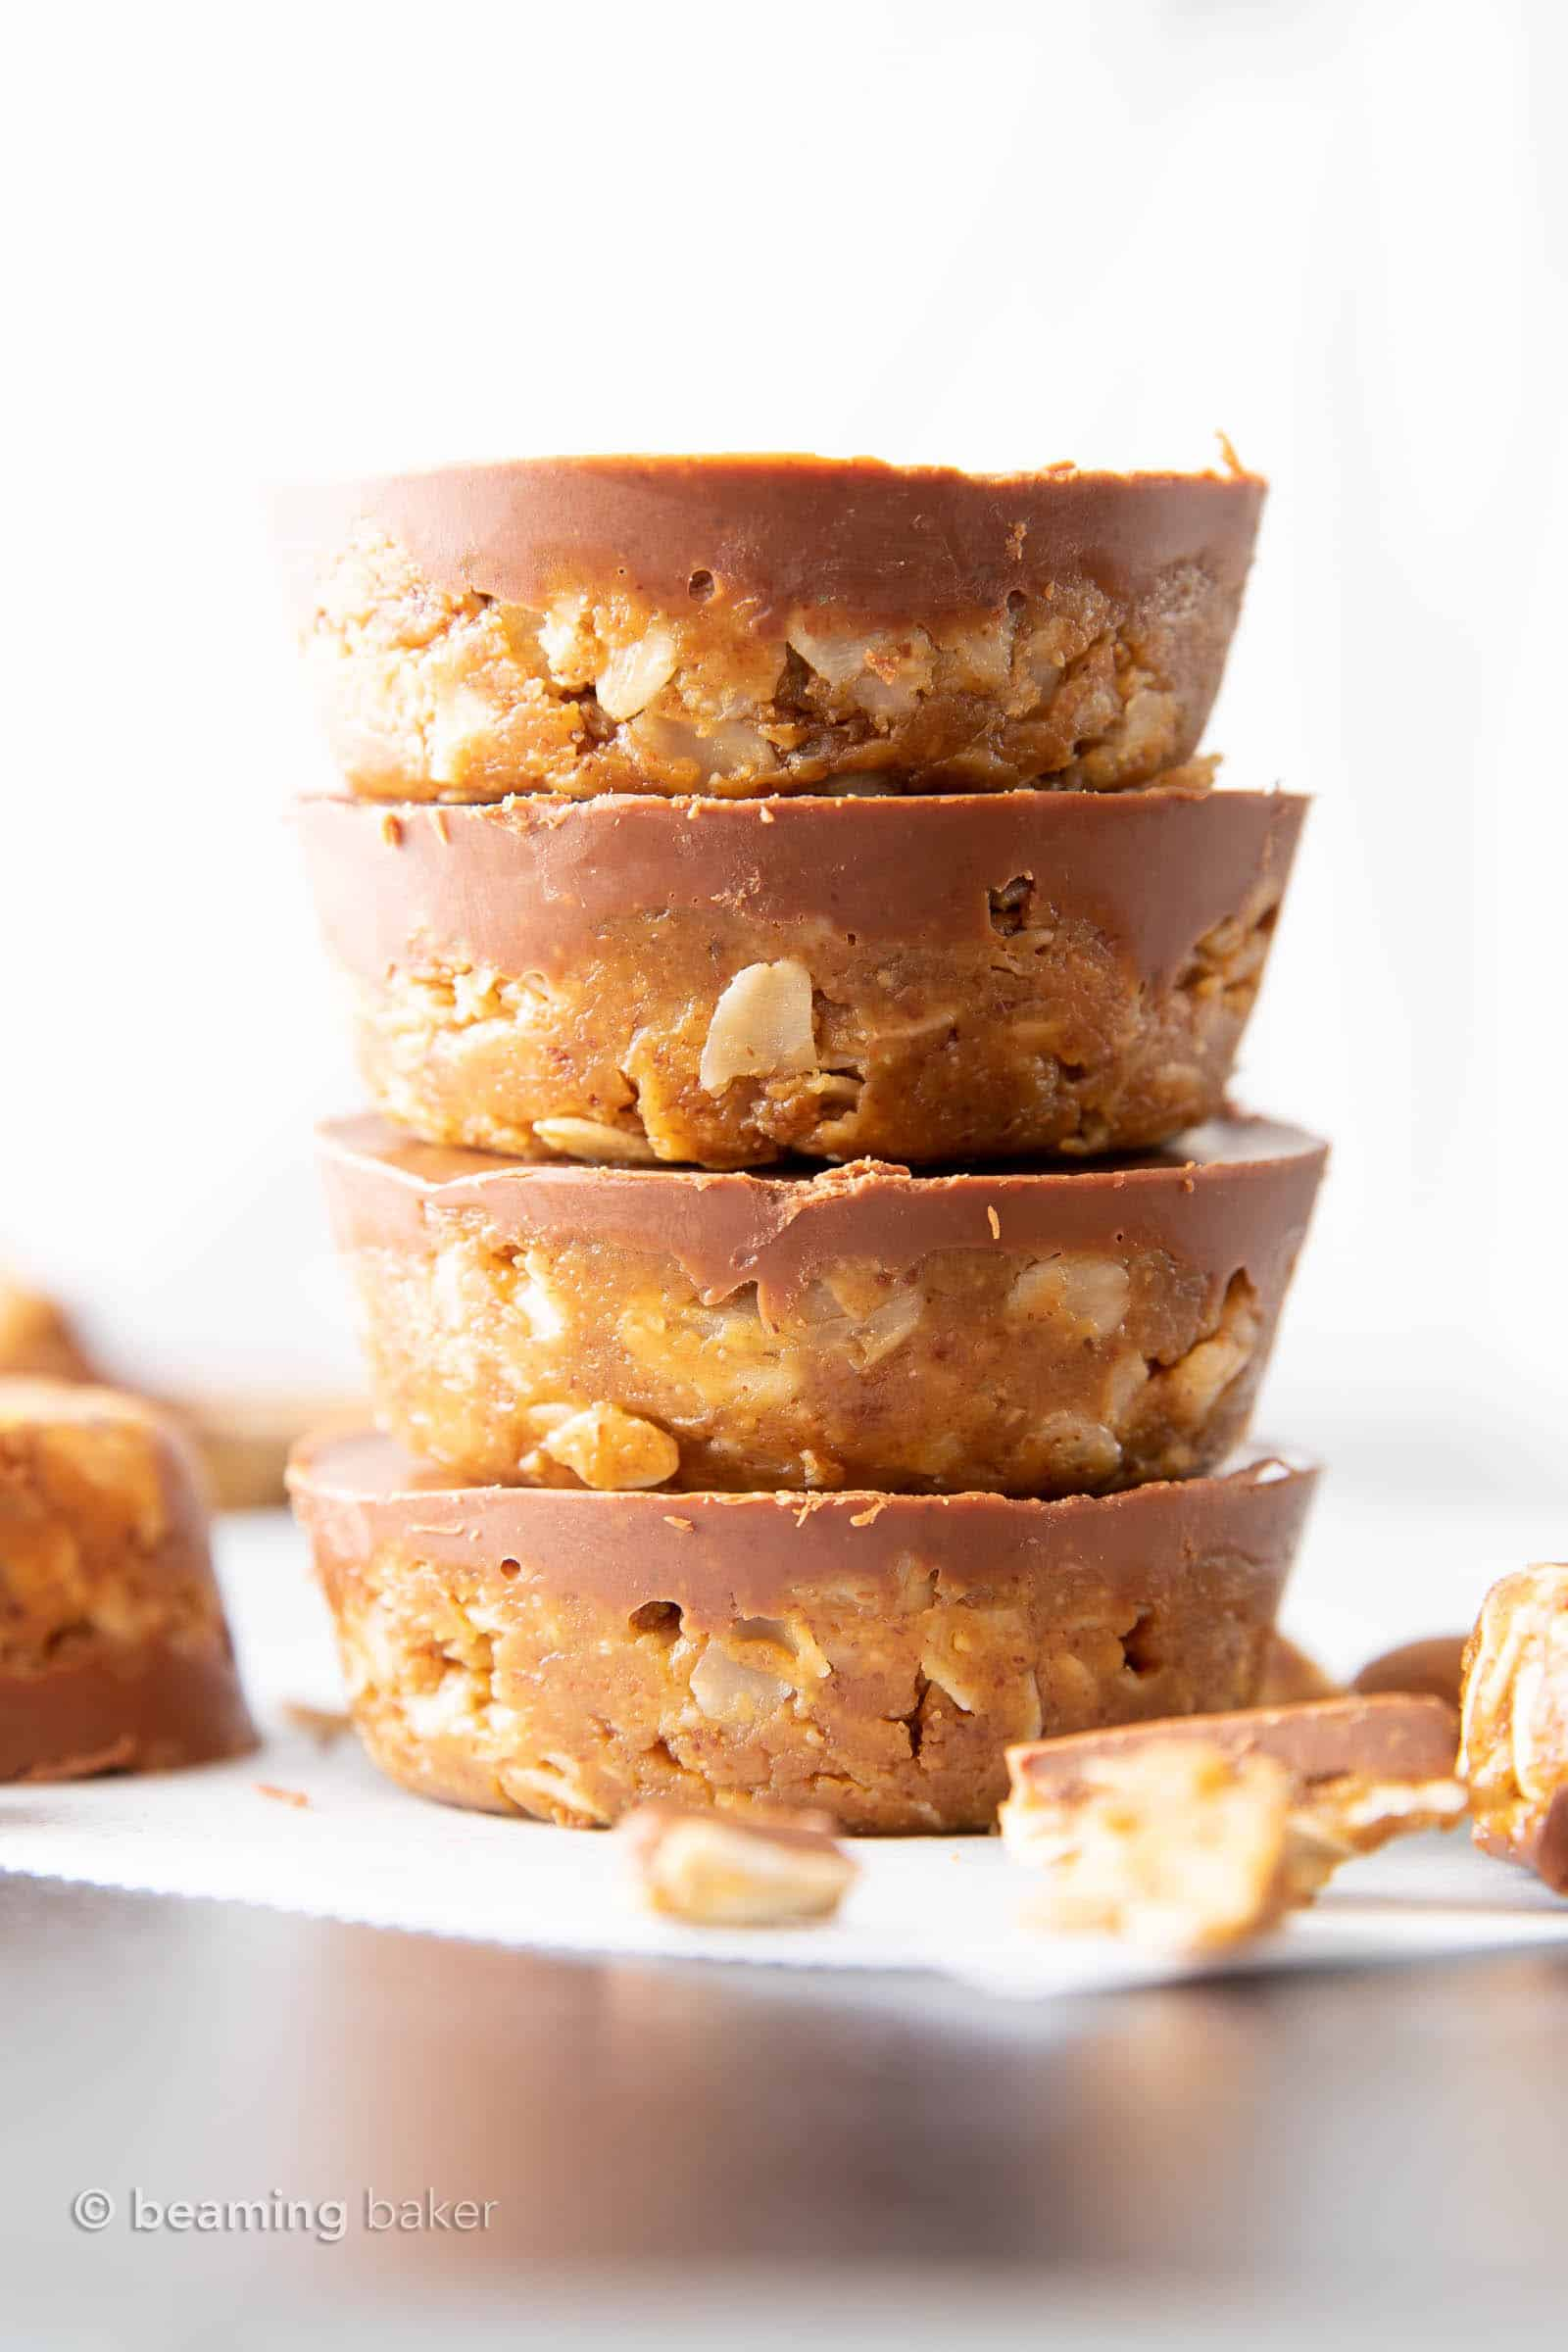 Chocolate Almond Butter Oatmeal Cups: an easy 4 ingredient recipe for no bake oatmeal cups with almond butter & chocolate topping! A quick & easy healthy snack that's delicious! #Chocolate #AlmondButter #Snacks #Oatmeal | Recipe at BeamingBaker.com